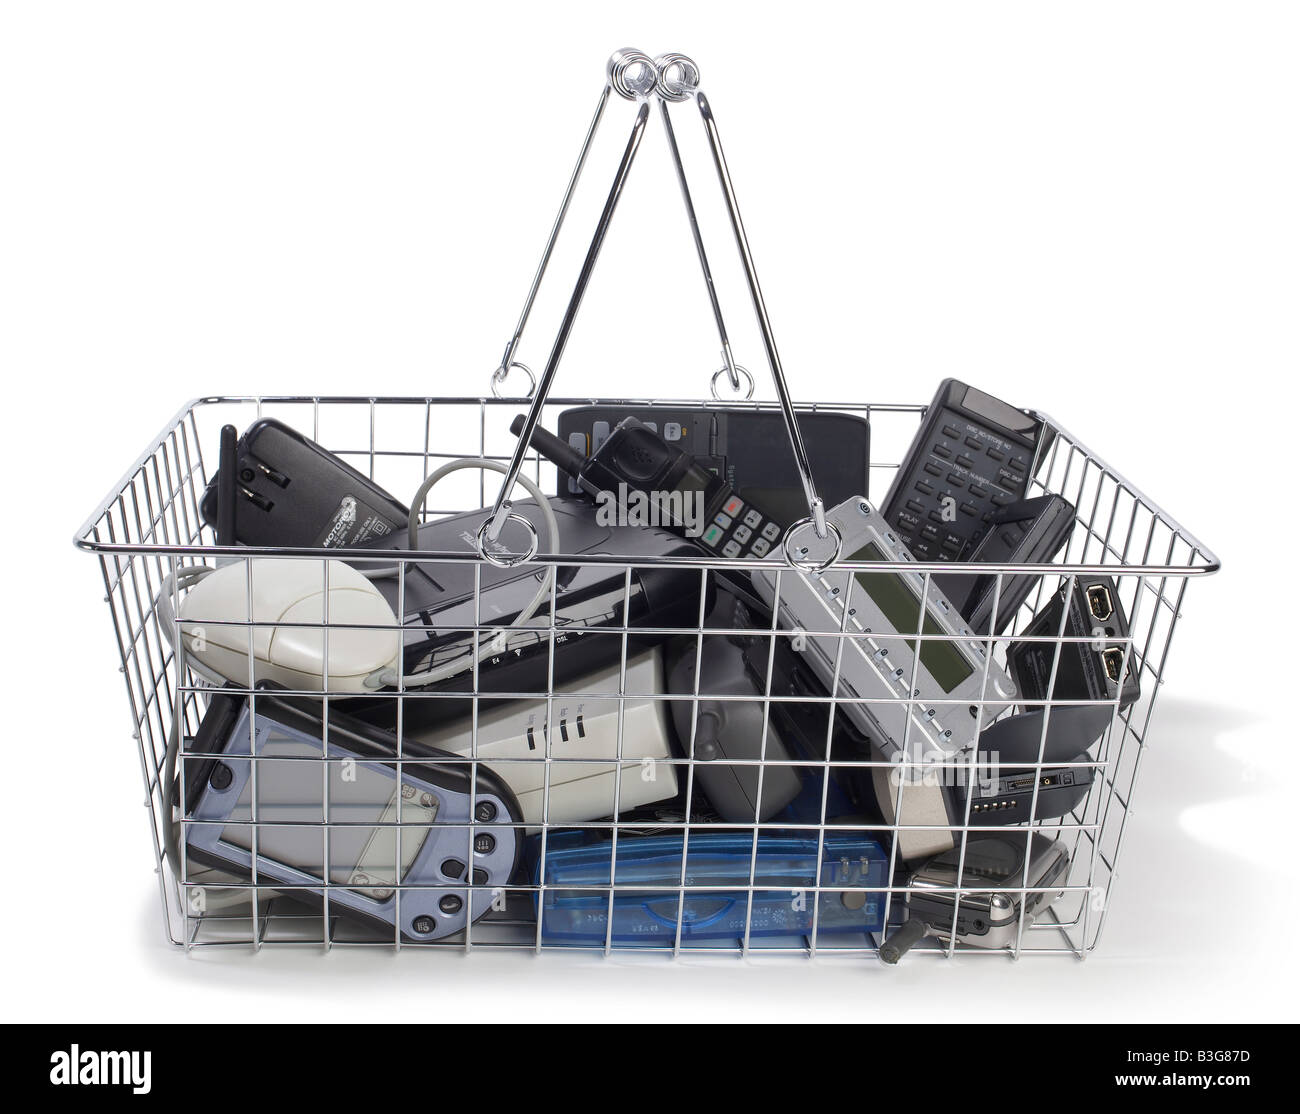 wire Shopping basket with old tech gadgets - Stock Image